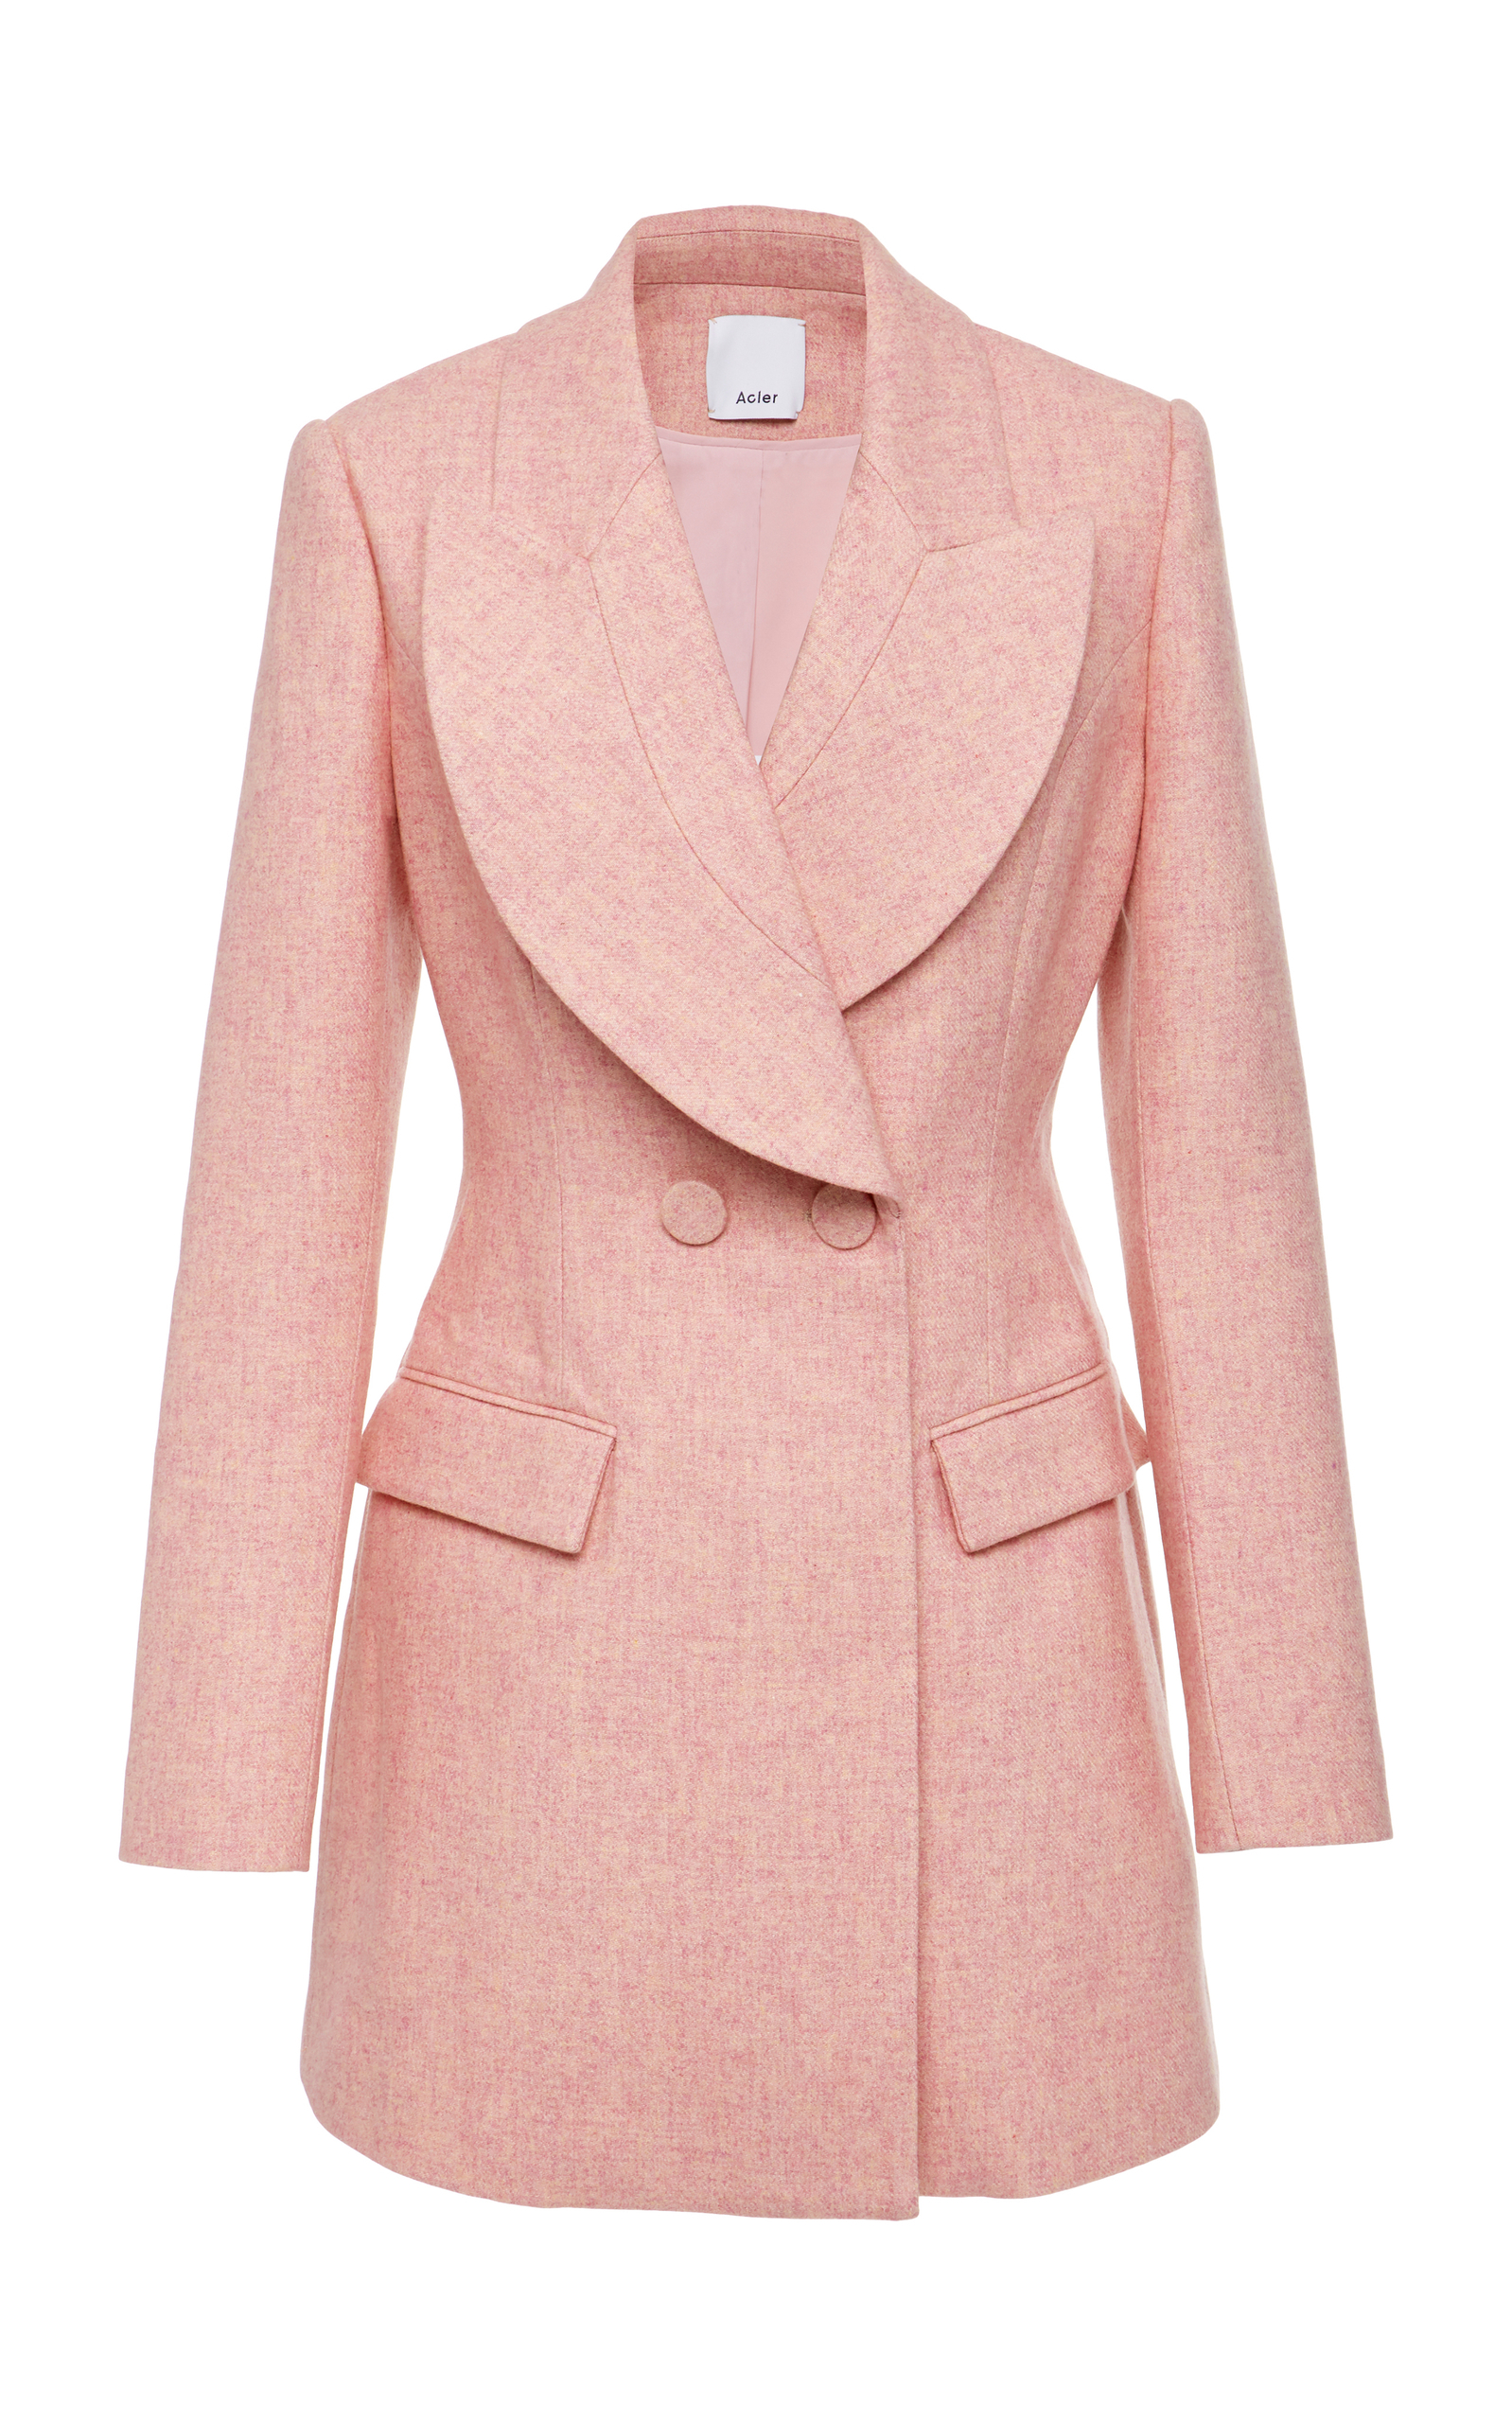 ACLER CUNNINGHAM DOUBLE BREASTED WOOL BLAZER